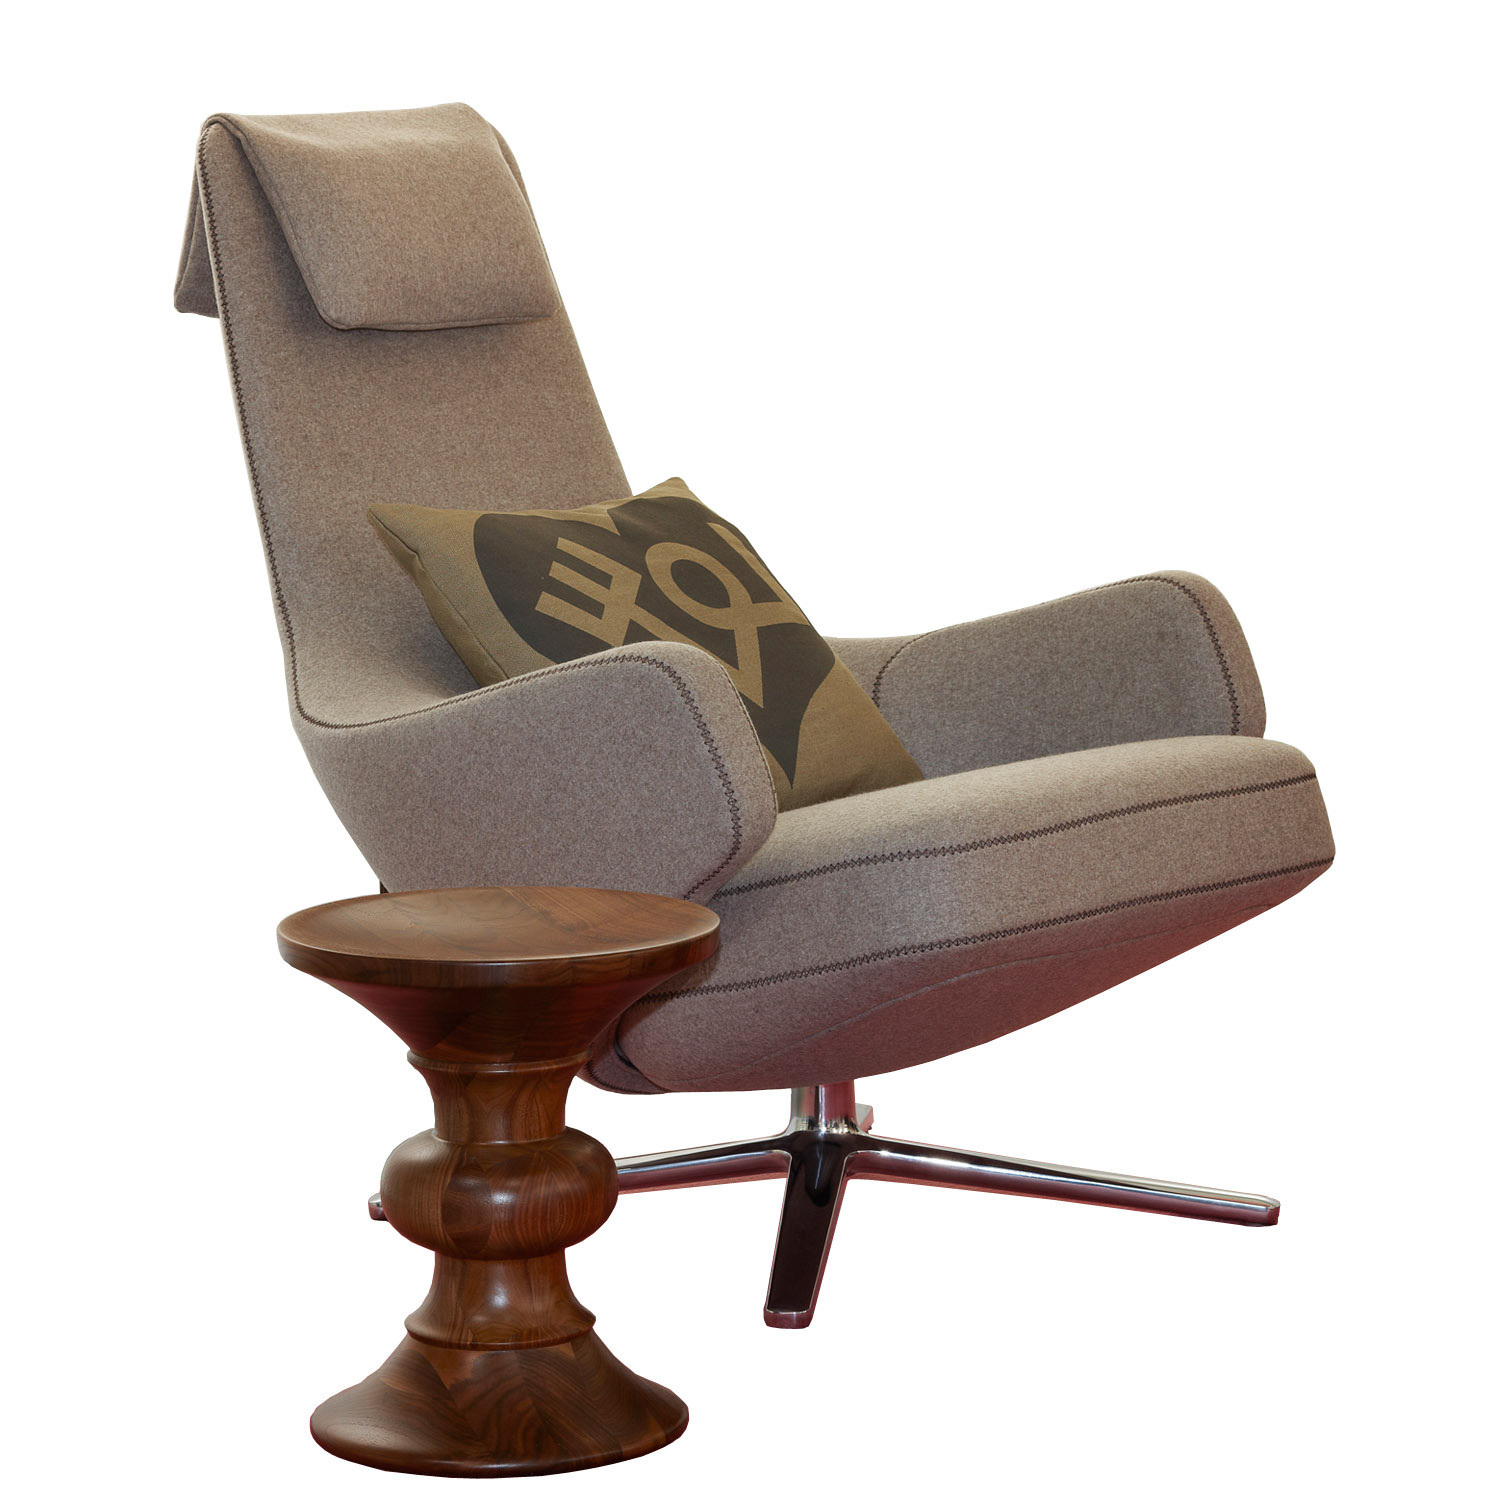 luxury lounge chairs. Grand Repos Chair Luxury Lounge Chairs F